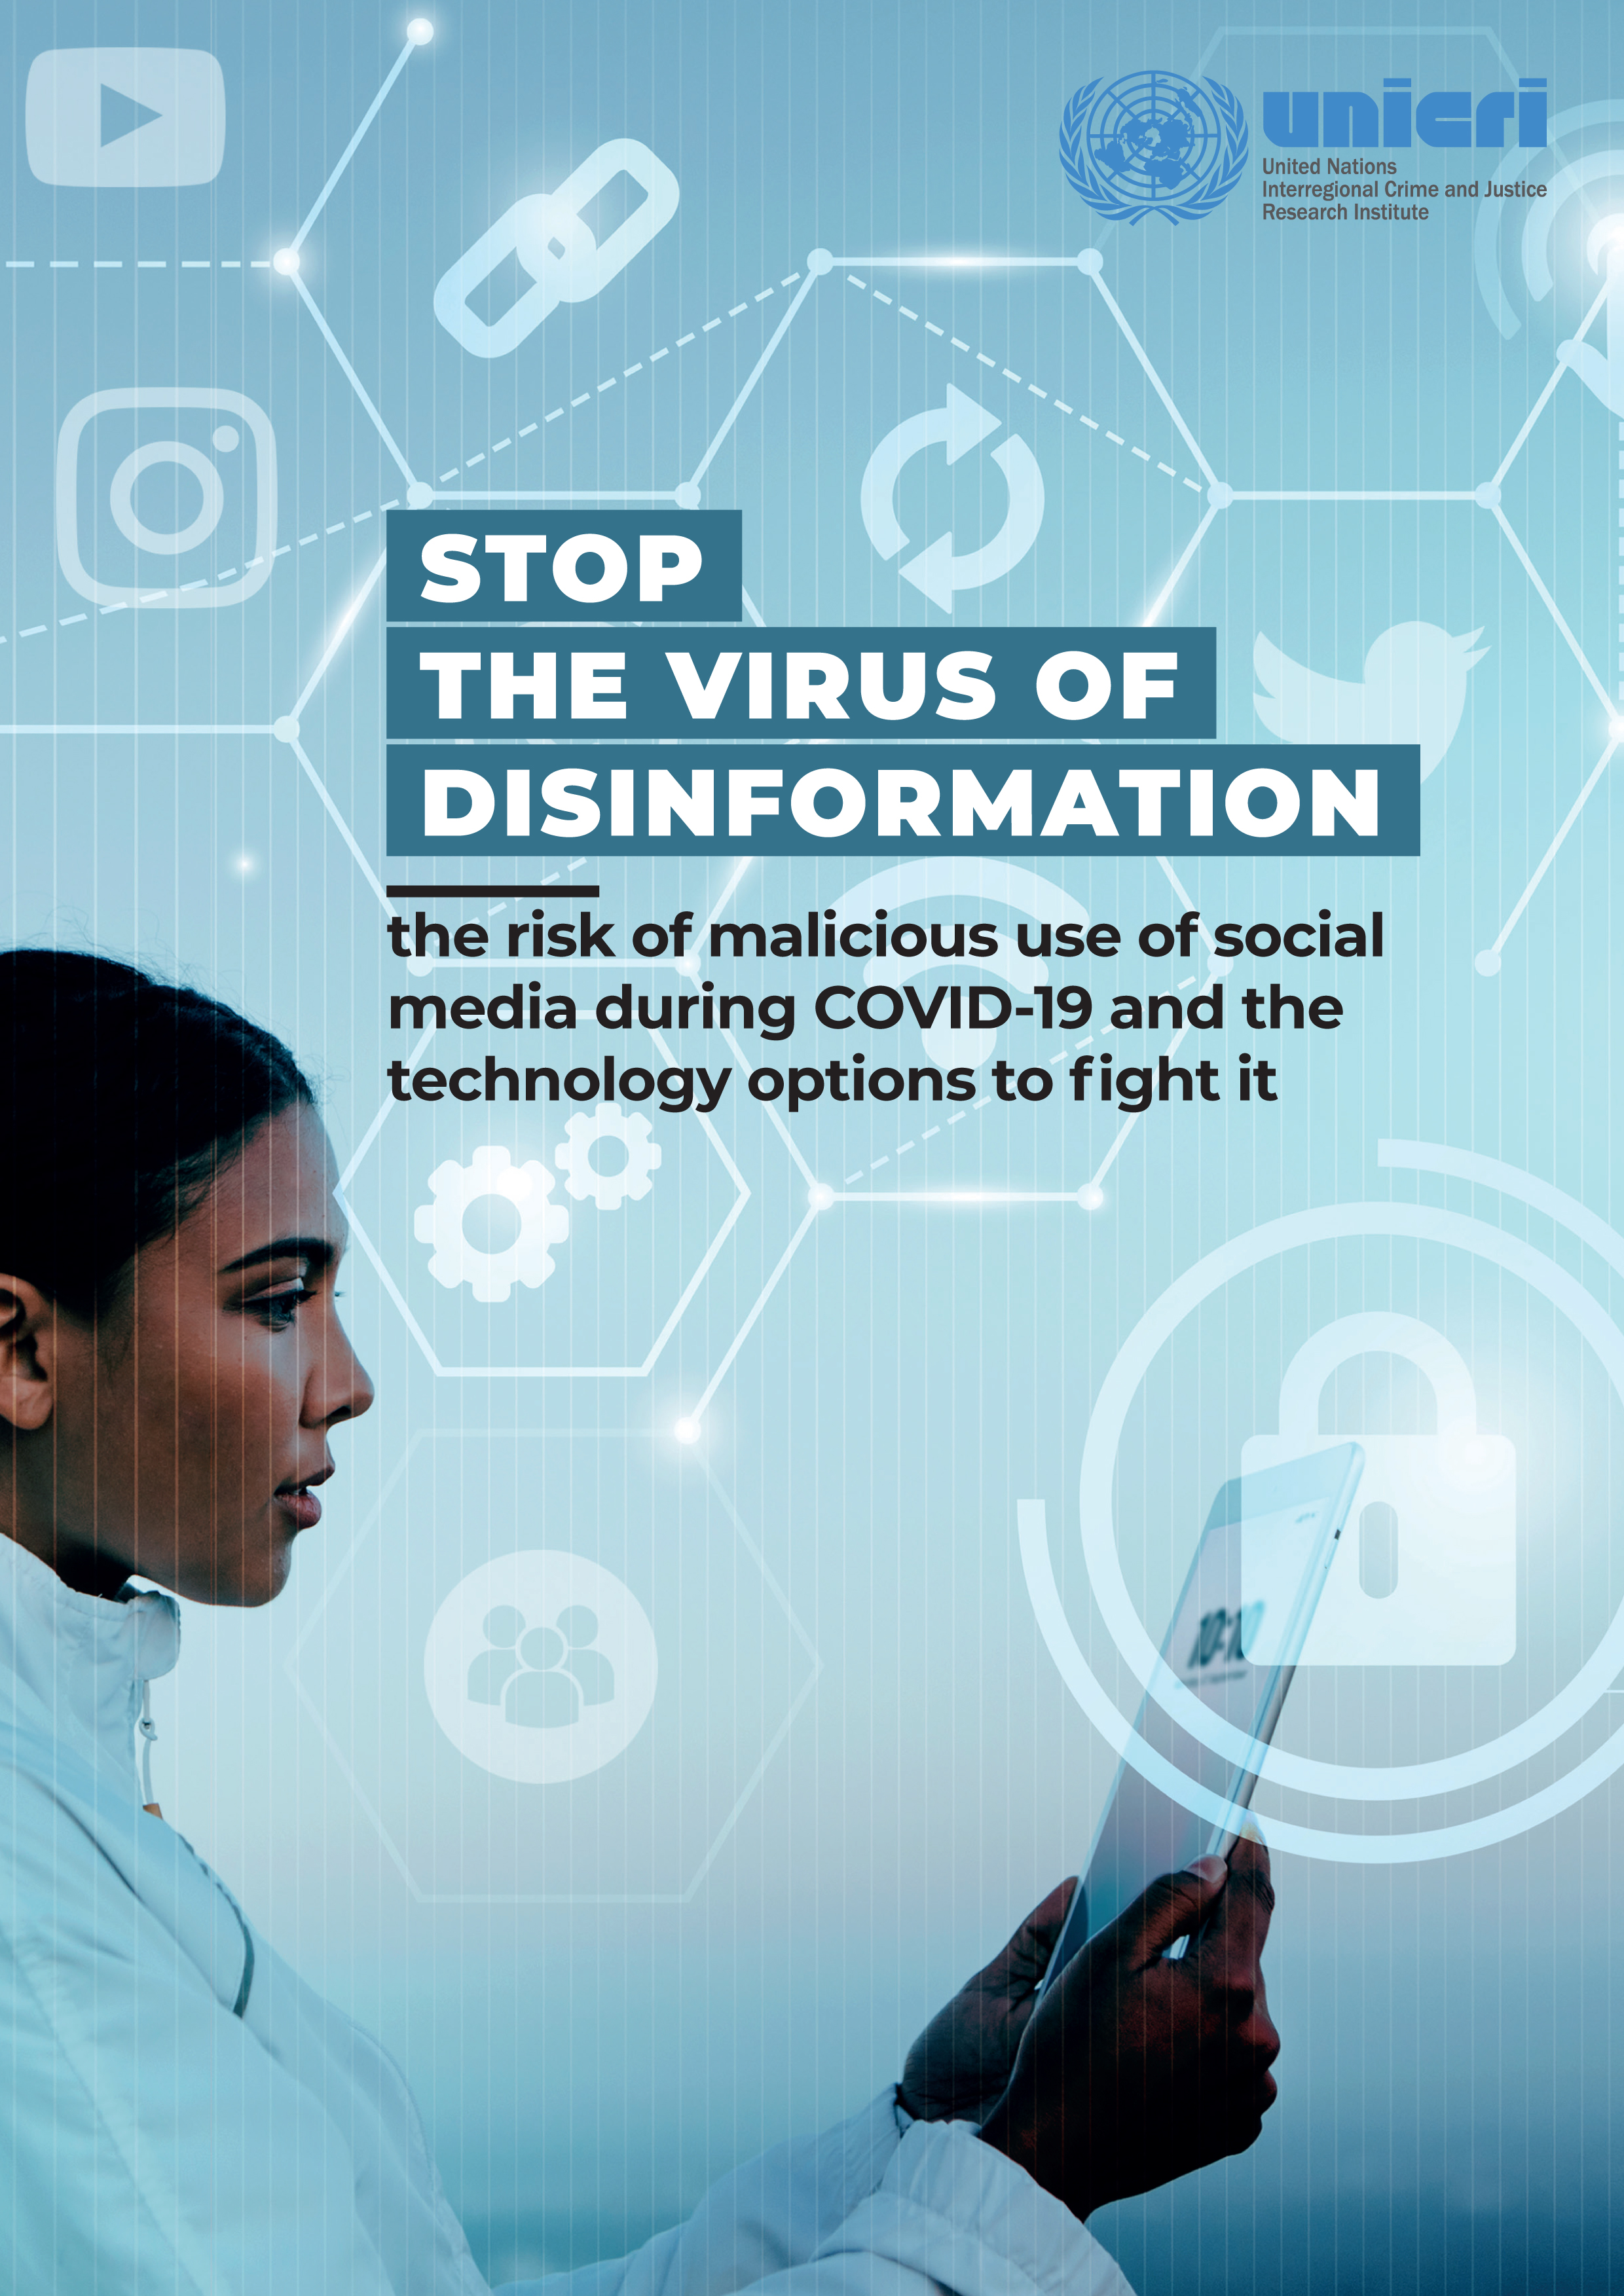 STOP THE VIRUS OF DISINFORMATION